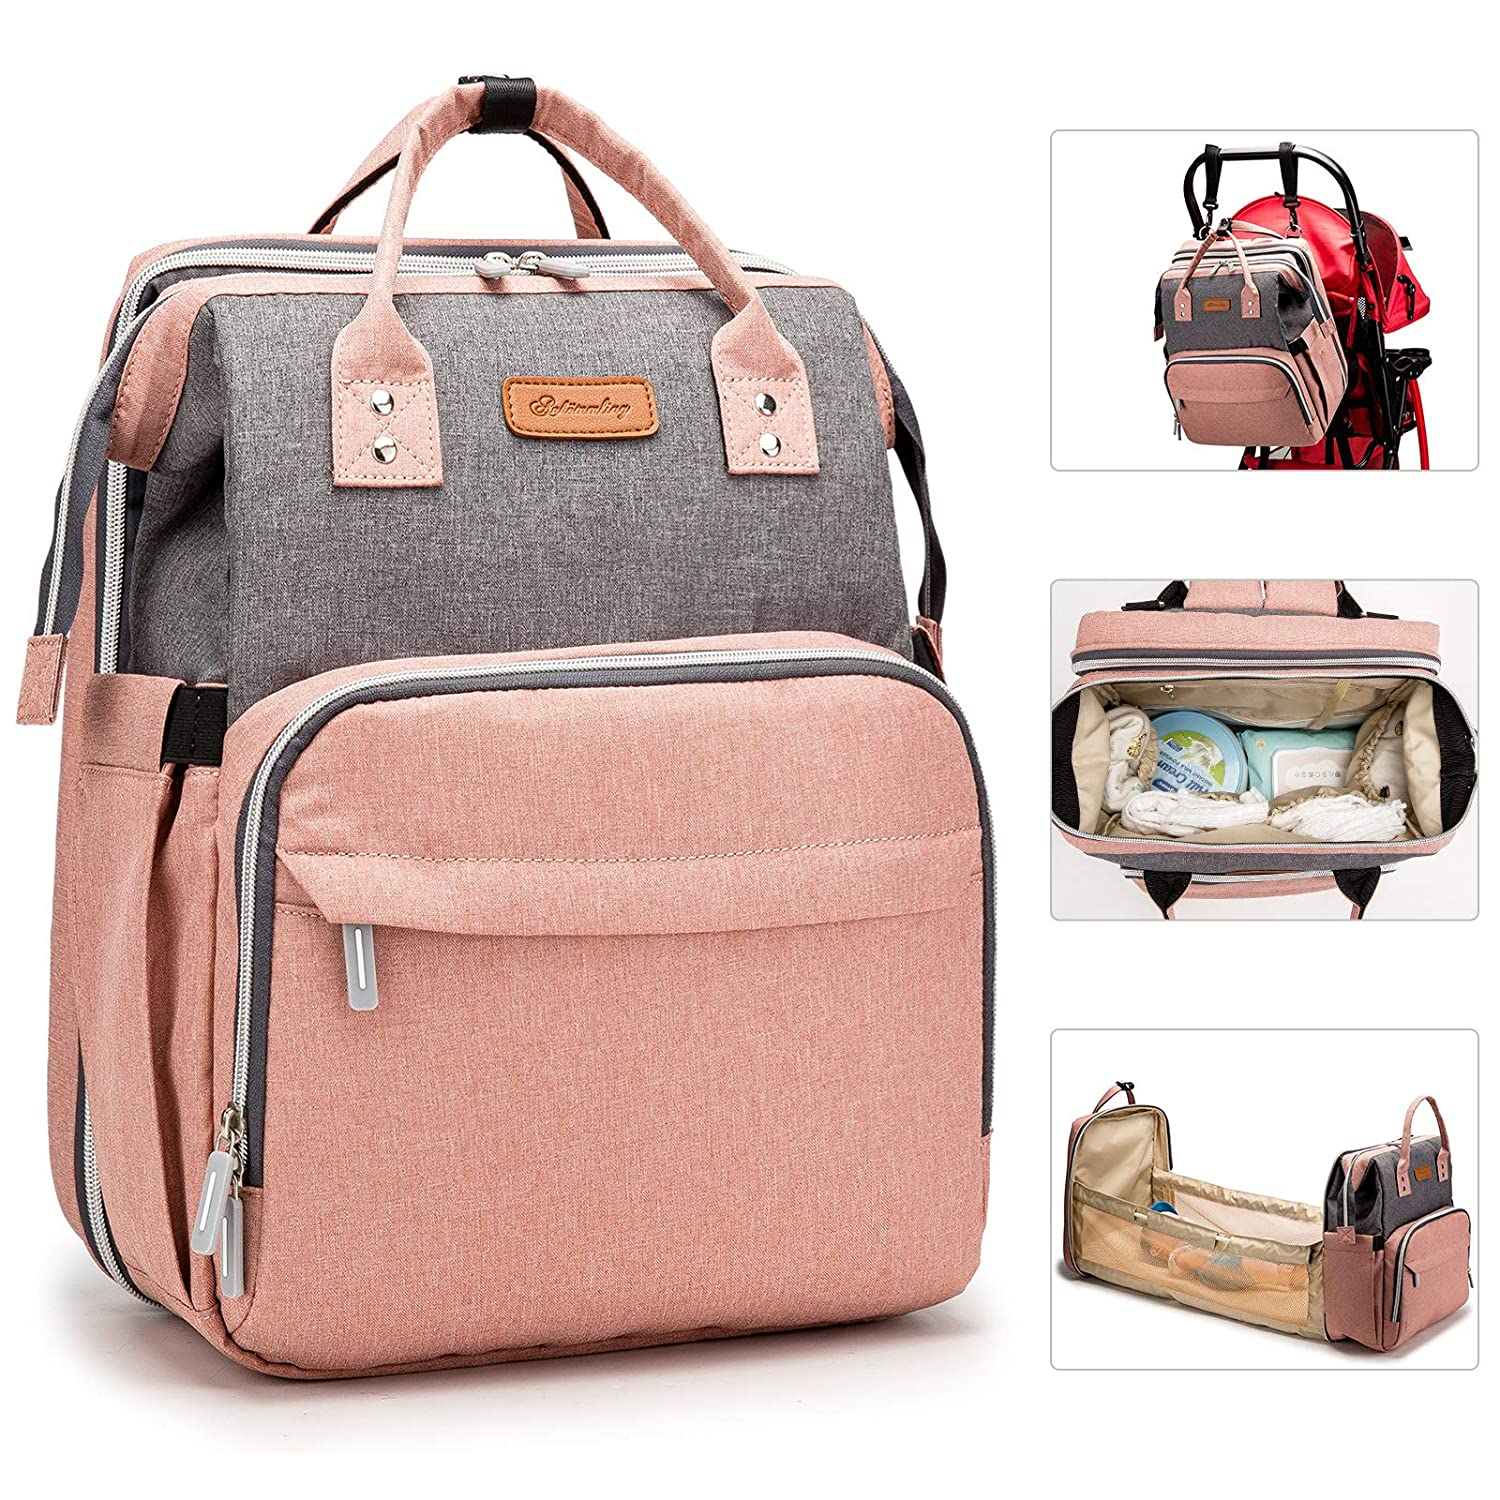 DIAPER BAG BACKPACK BASSINET FOLDING CRIB 3 IN 1 MUMMY TRAVEL FOLDABLE BABY BED PORTABLE DIAPER CHANGING STATION WATERPROOF BAG USB CHARGING PORT HEAT PRESERVATION POCKETS MATTRESS